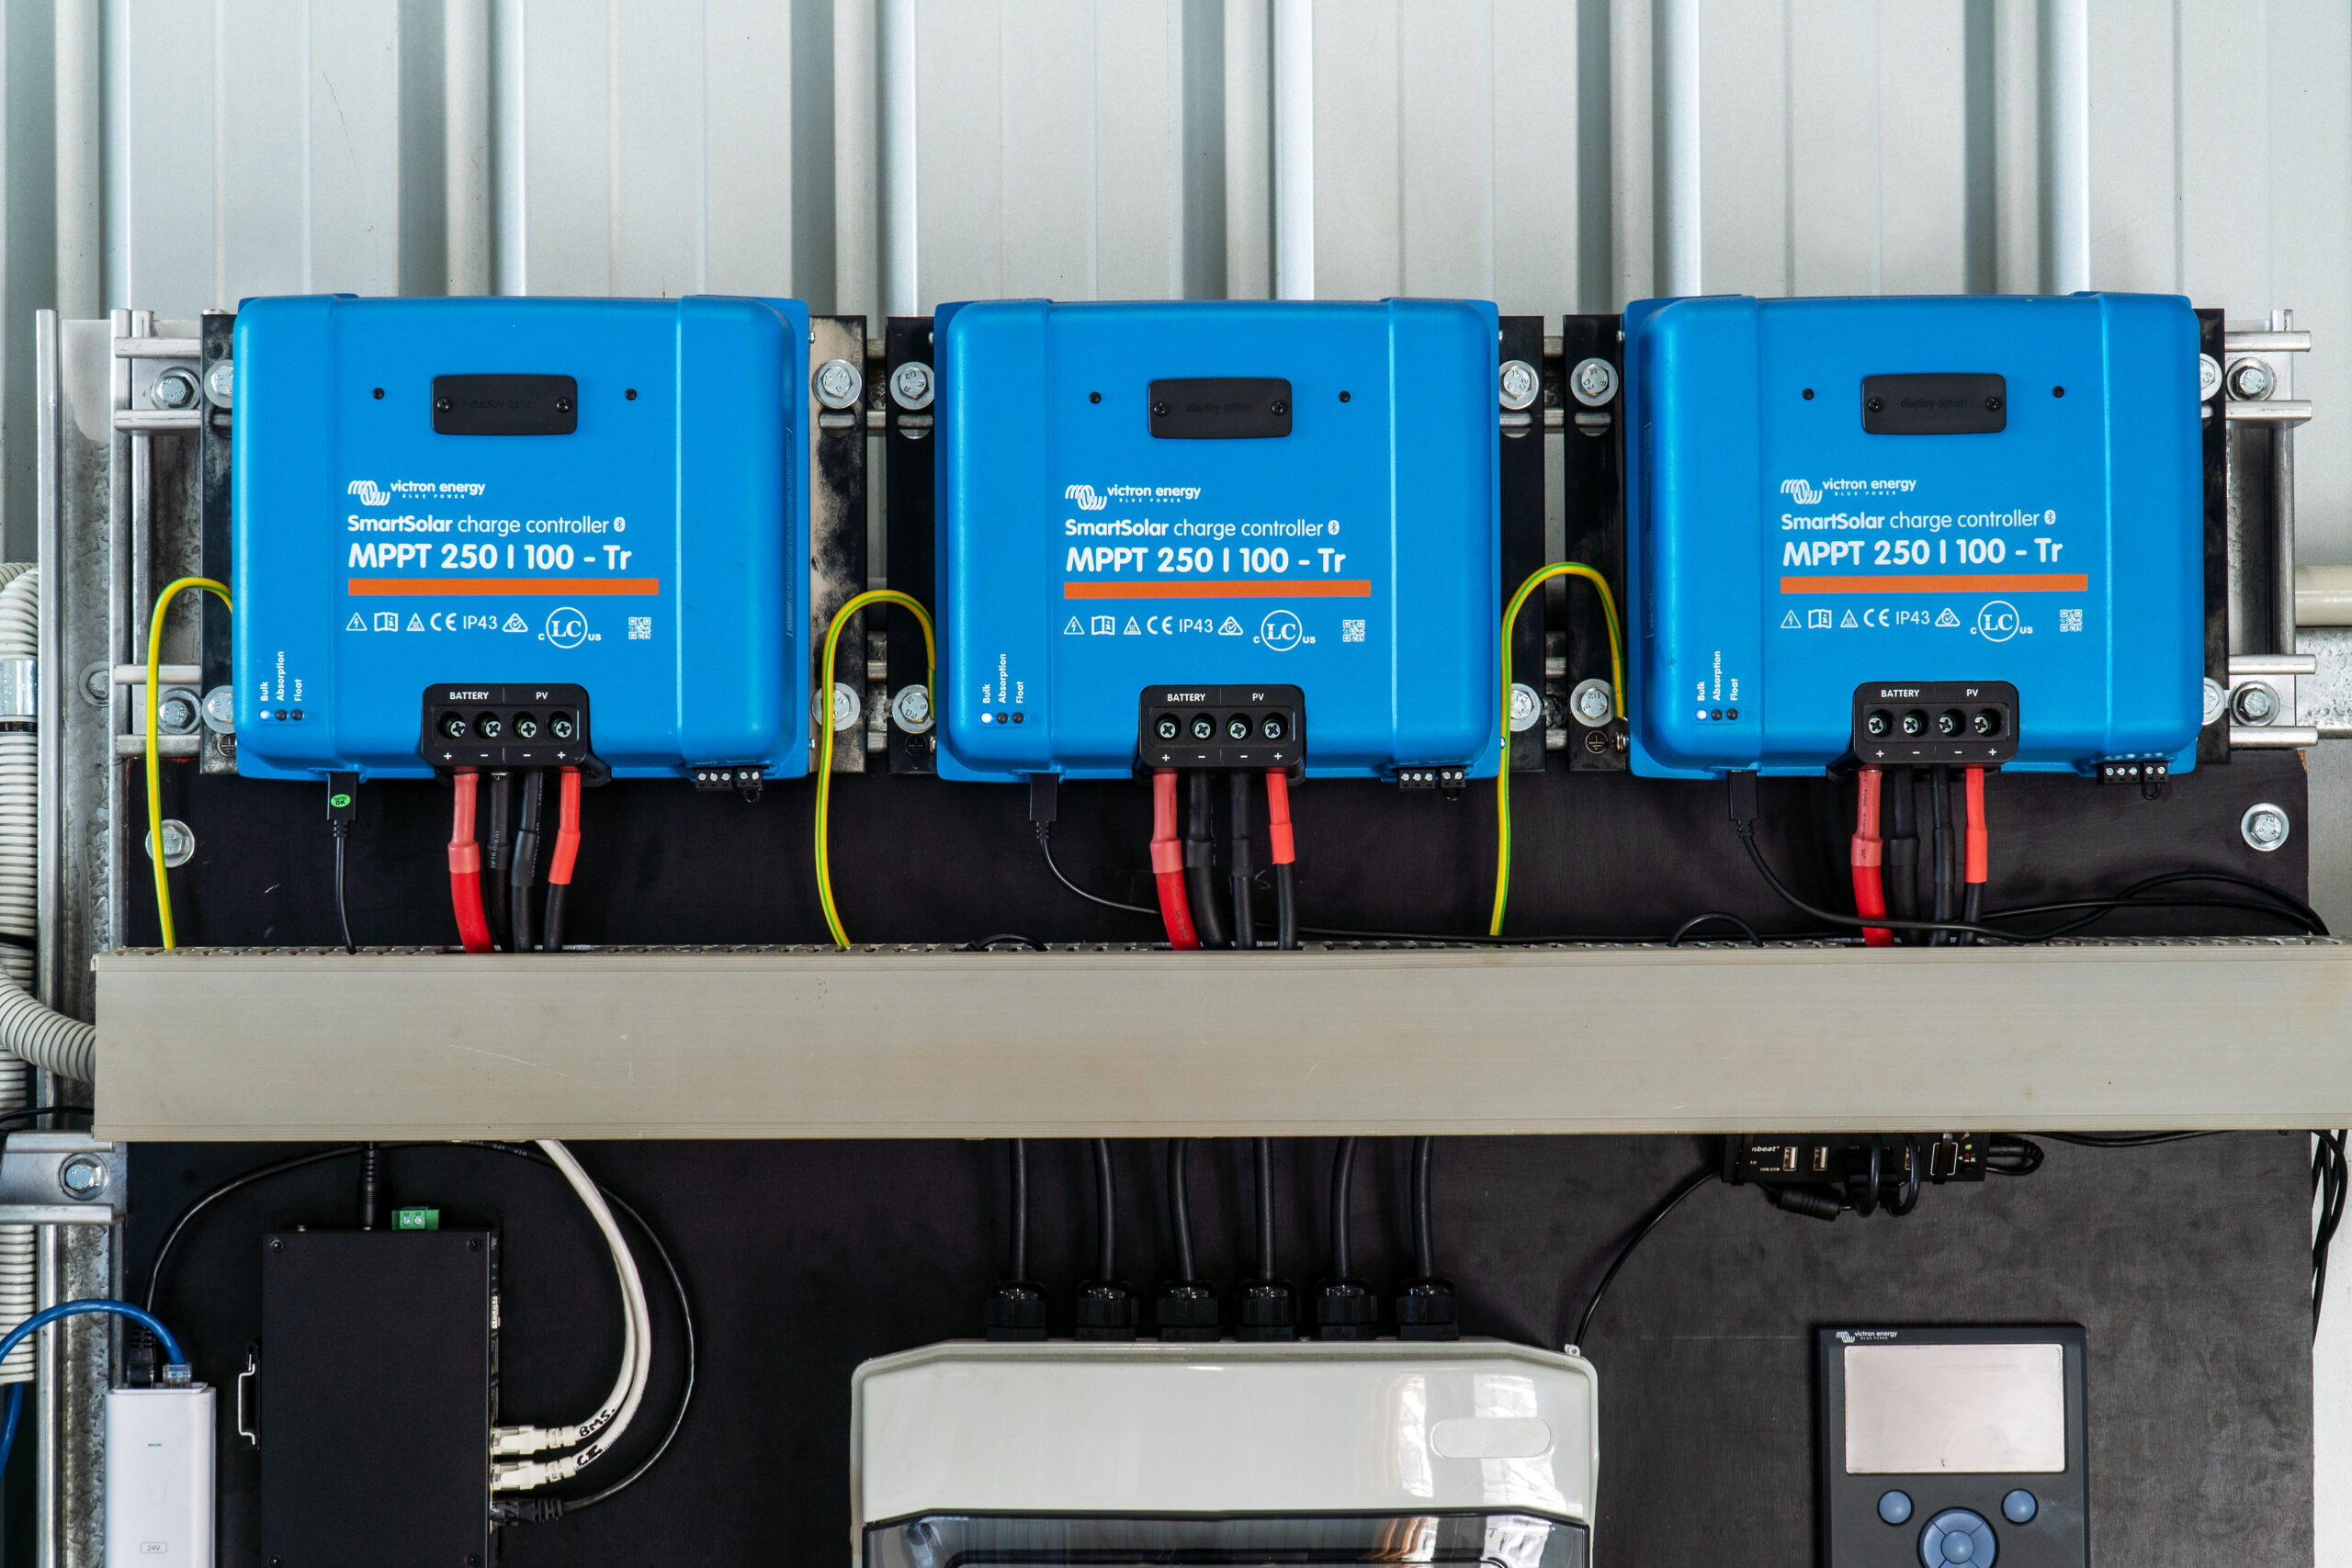 Victron Energy MPPT smartsolar charge controllers